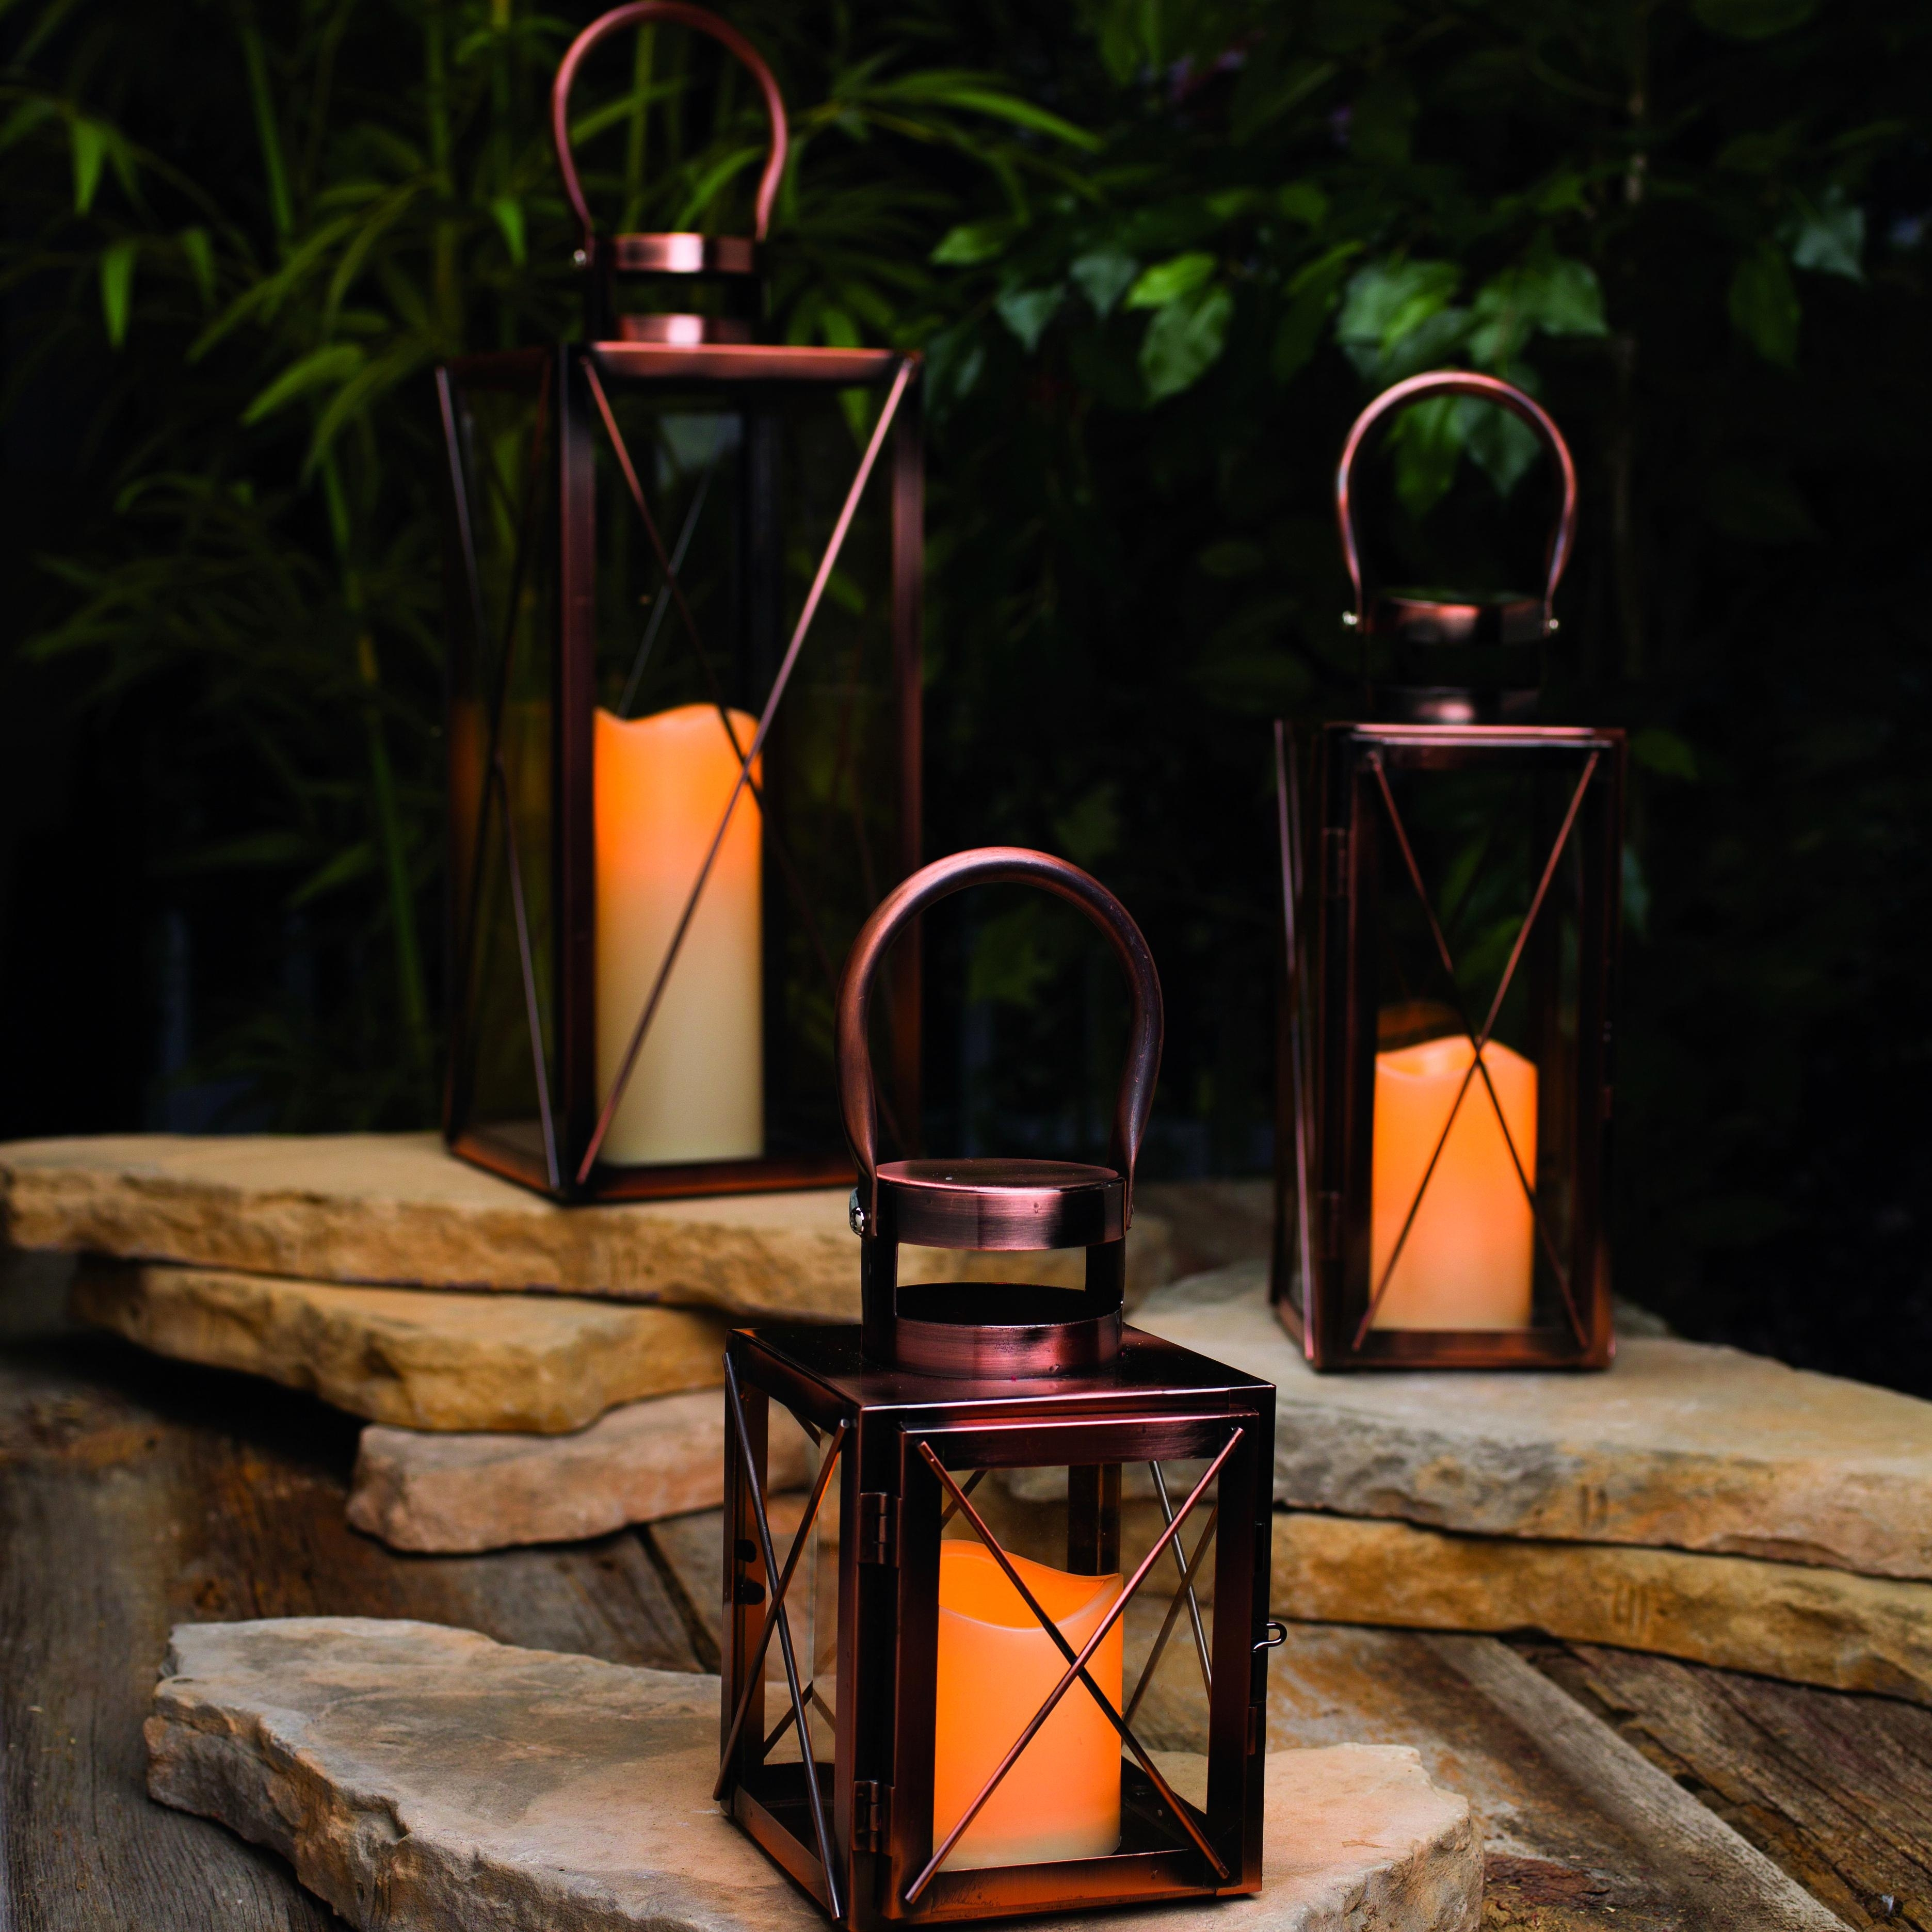 Improbable-Patio-String-Lights-Complement-Space-Outdoor-Candle intended for Outdoor Candle Lanterns for Patio (Image 11 of 20)